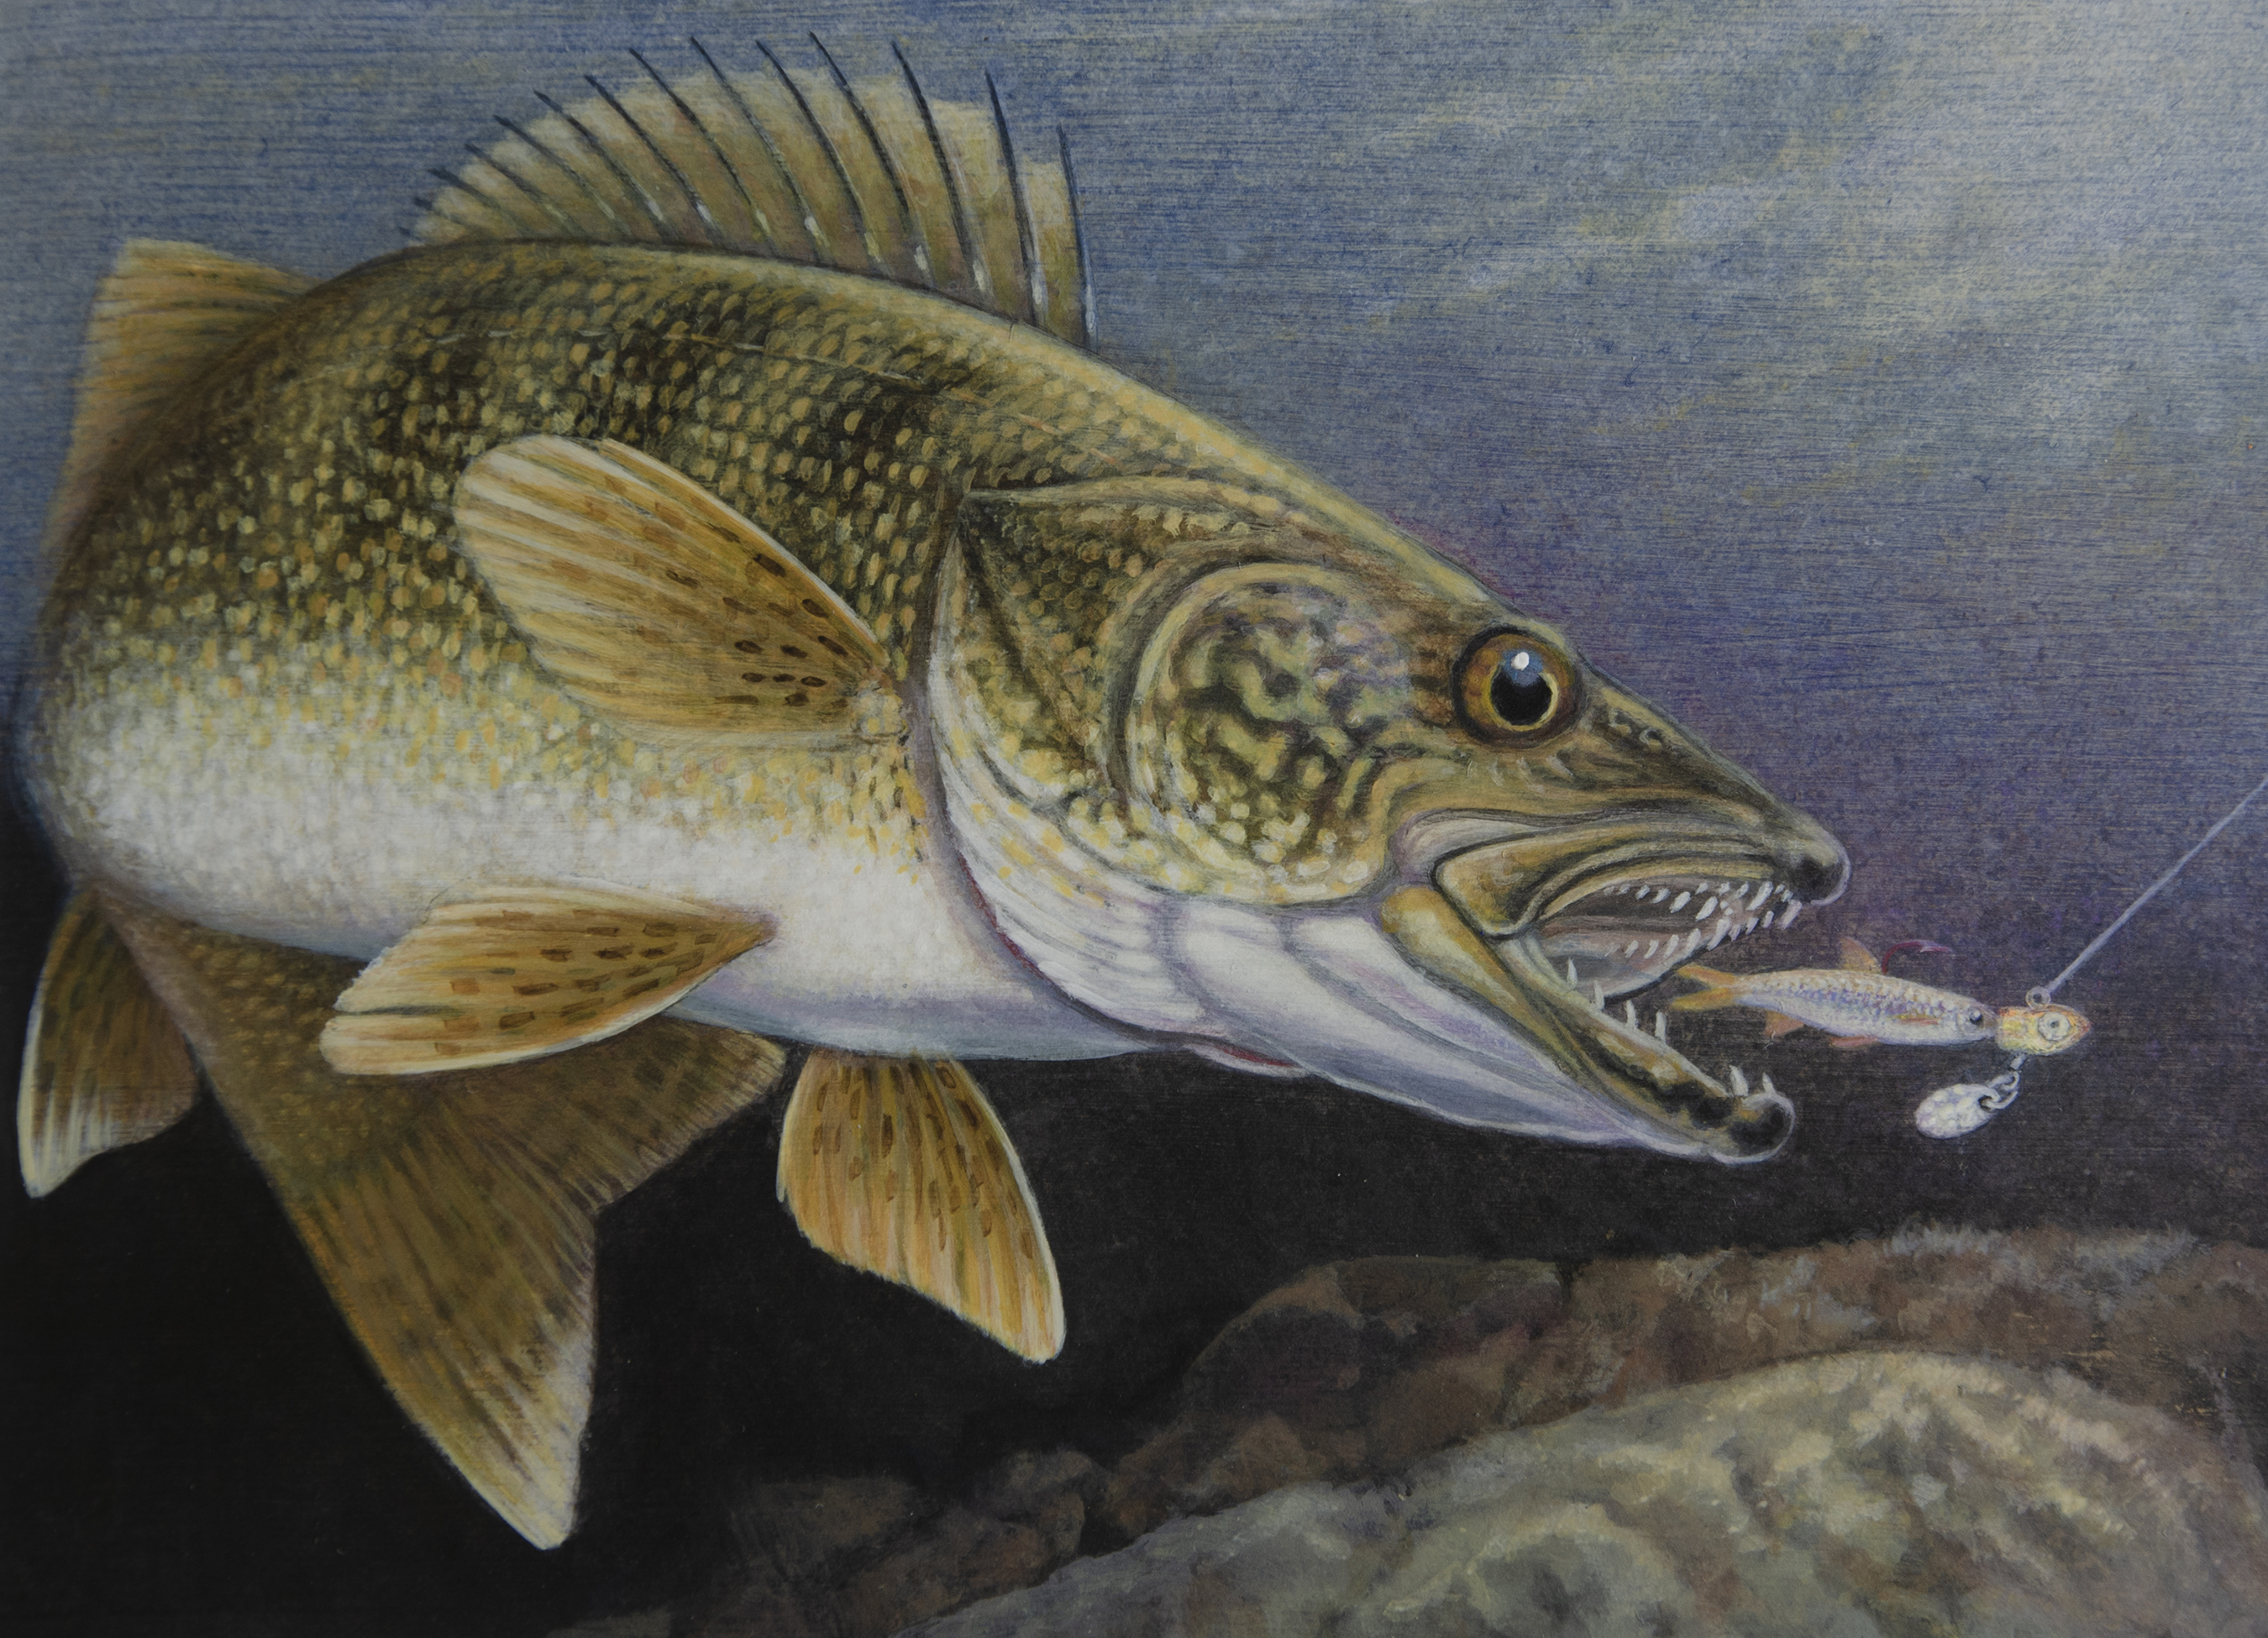 The 2021 walleye stamp